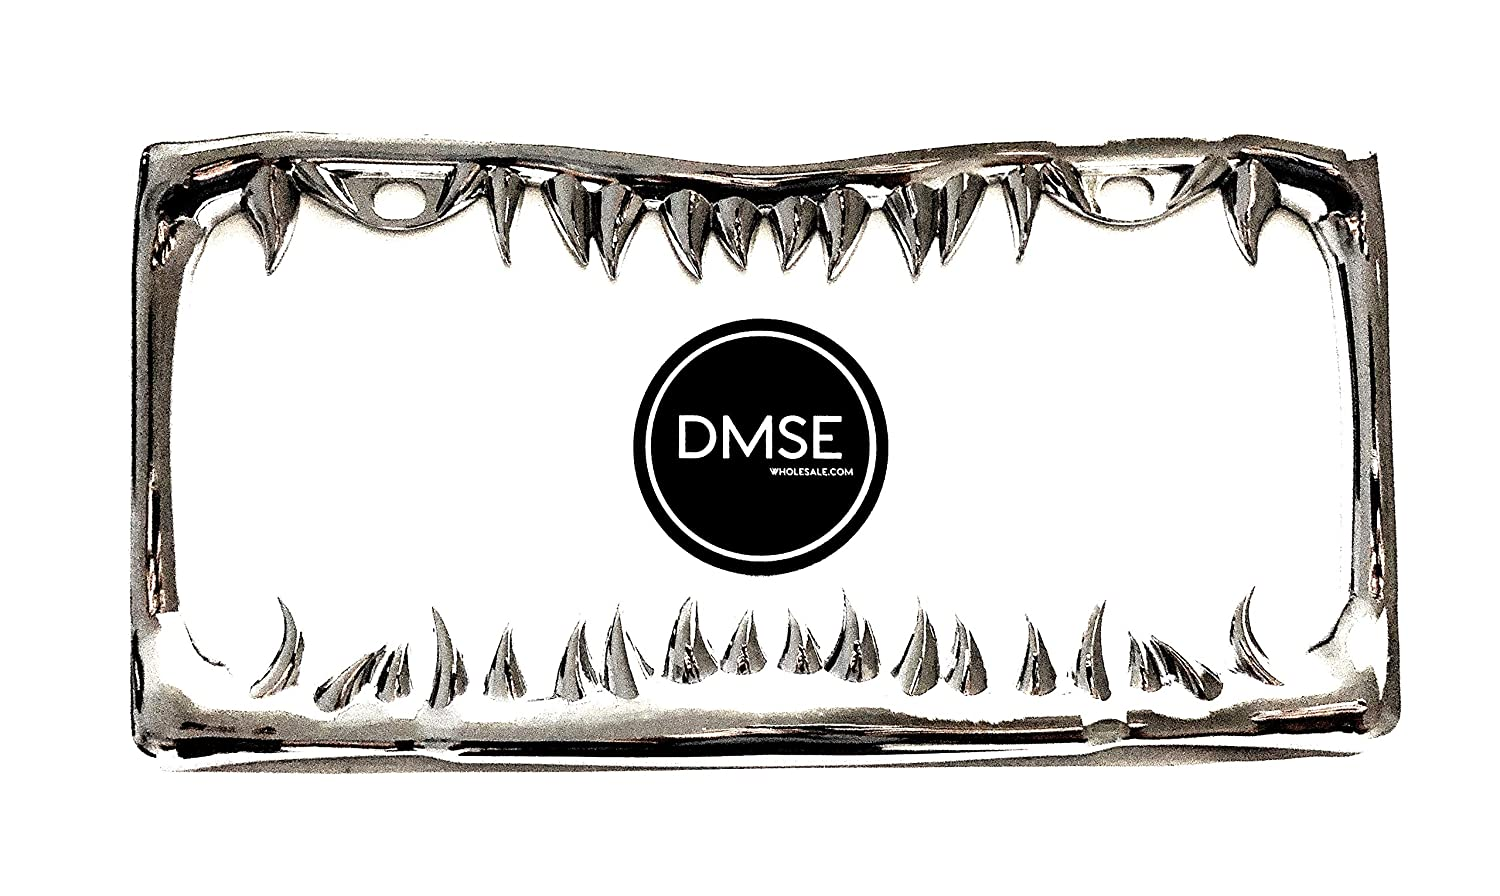 DMSE Universal Metal Shark Tooth Teeth Jaws License Plate Frame Cool Design For Any Vehicle Black Sharks Tooth